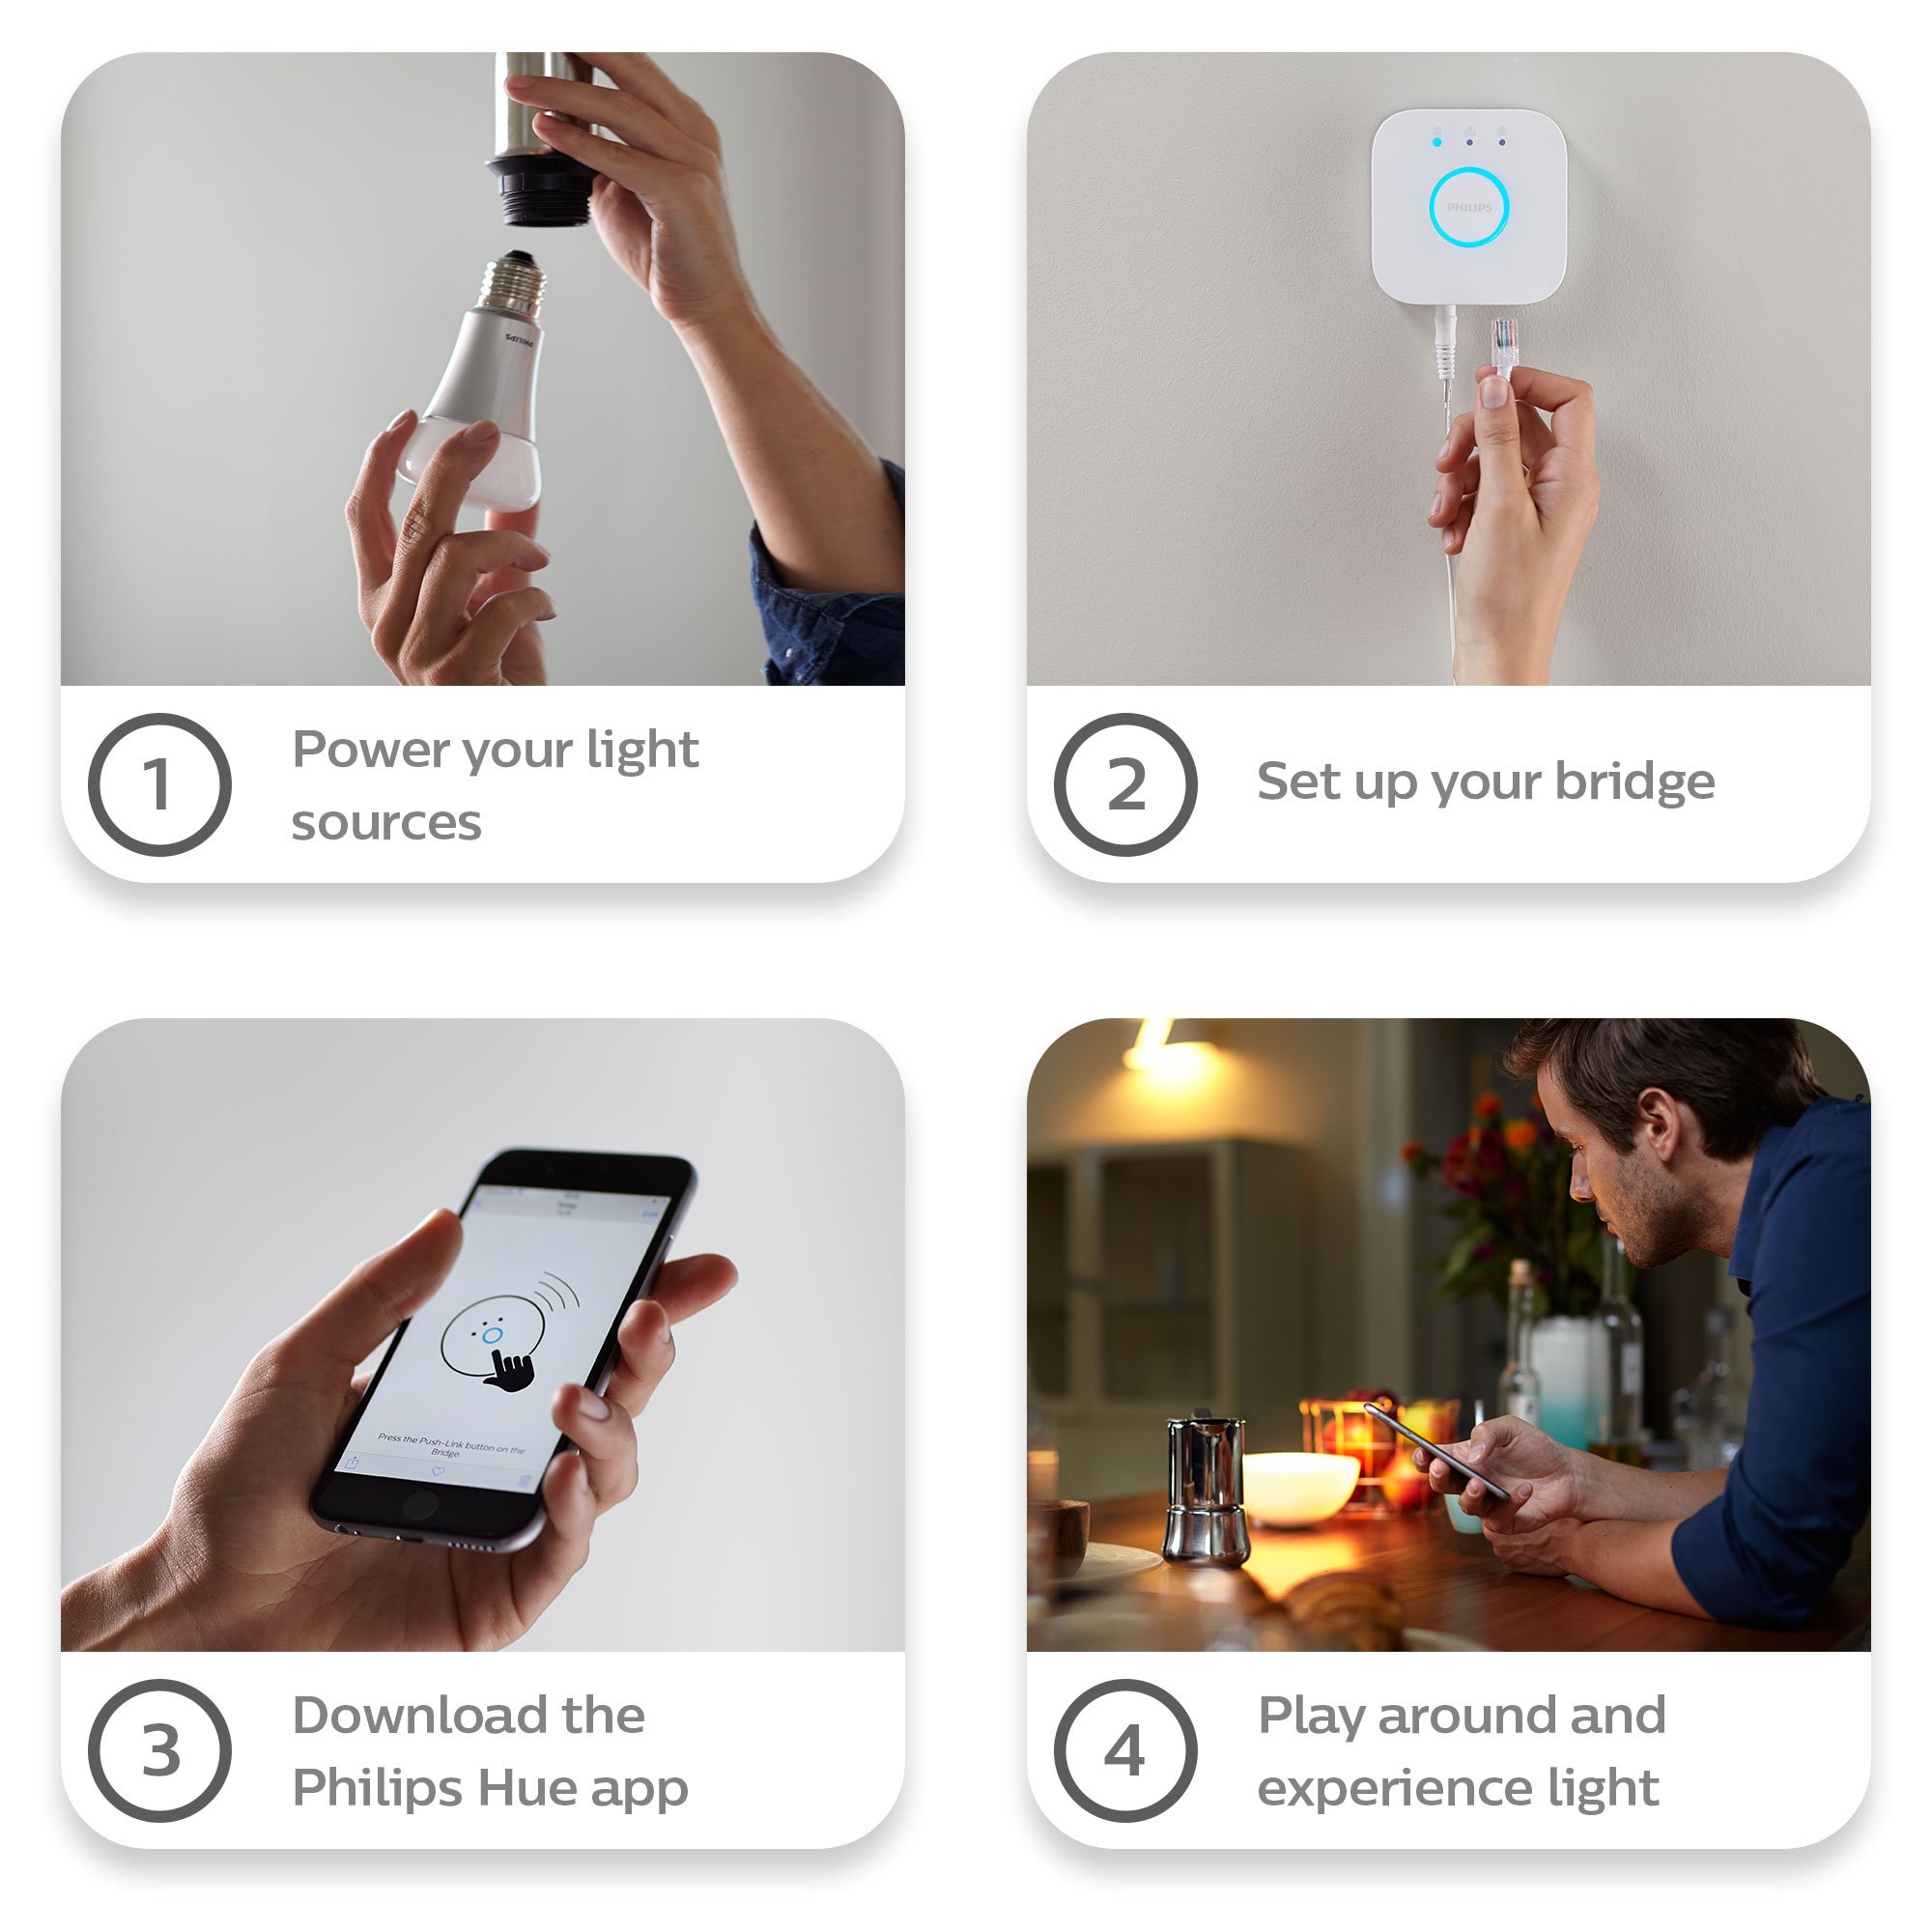 Philips Hue 464479 60W Equivalent White and Color Ambiance A19 Starter Kit, 3rd Generation, Works with Amazon Alexa by Philips (Image #9)